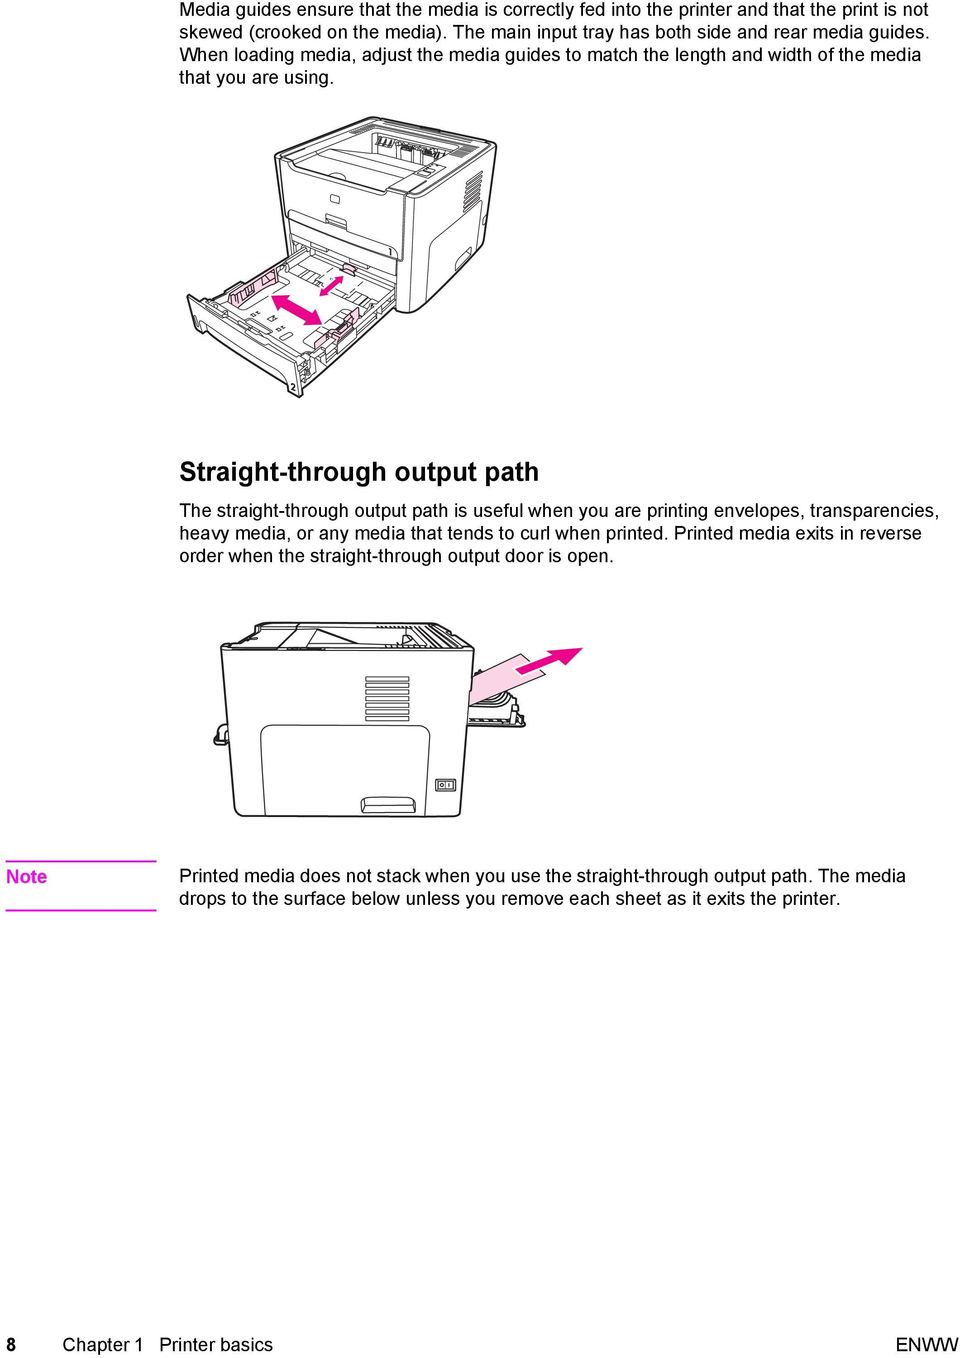 Straight-through output path The straight-through output path is useful when you are printing envelopes, transparencies, heavy media, or any media that tends to curl when printed.